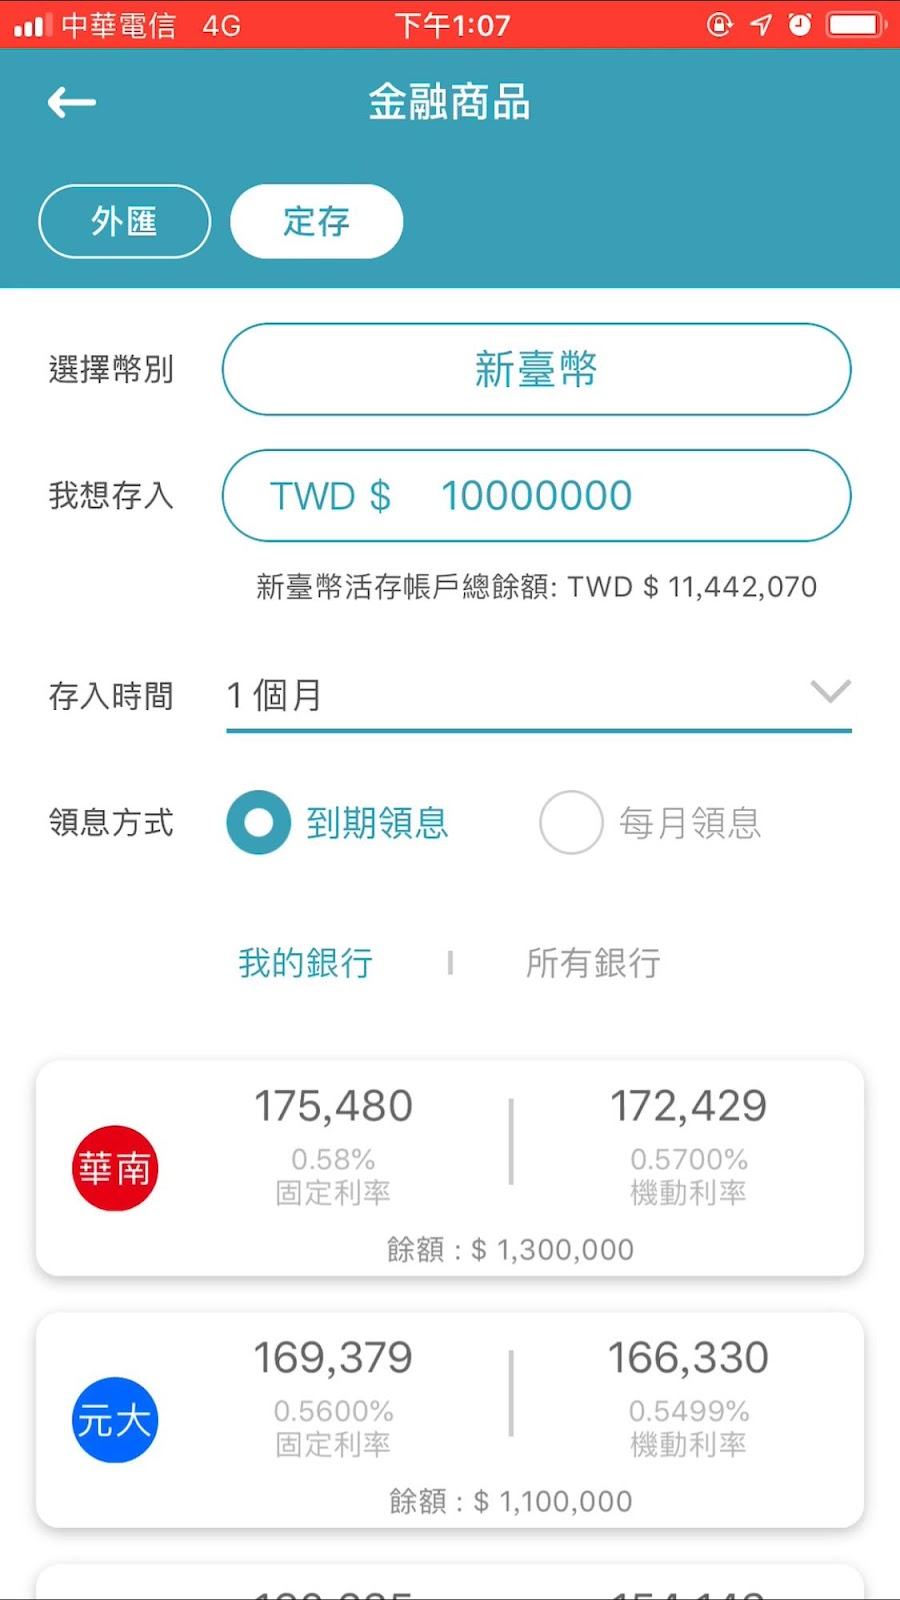 定期存款利息試算-Moneybook麻布記帳